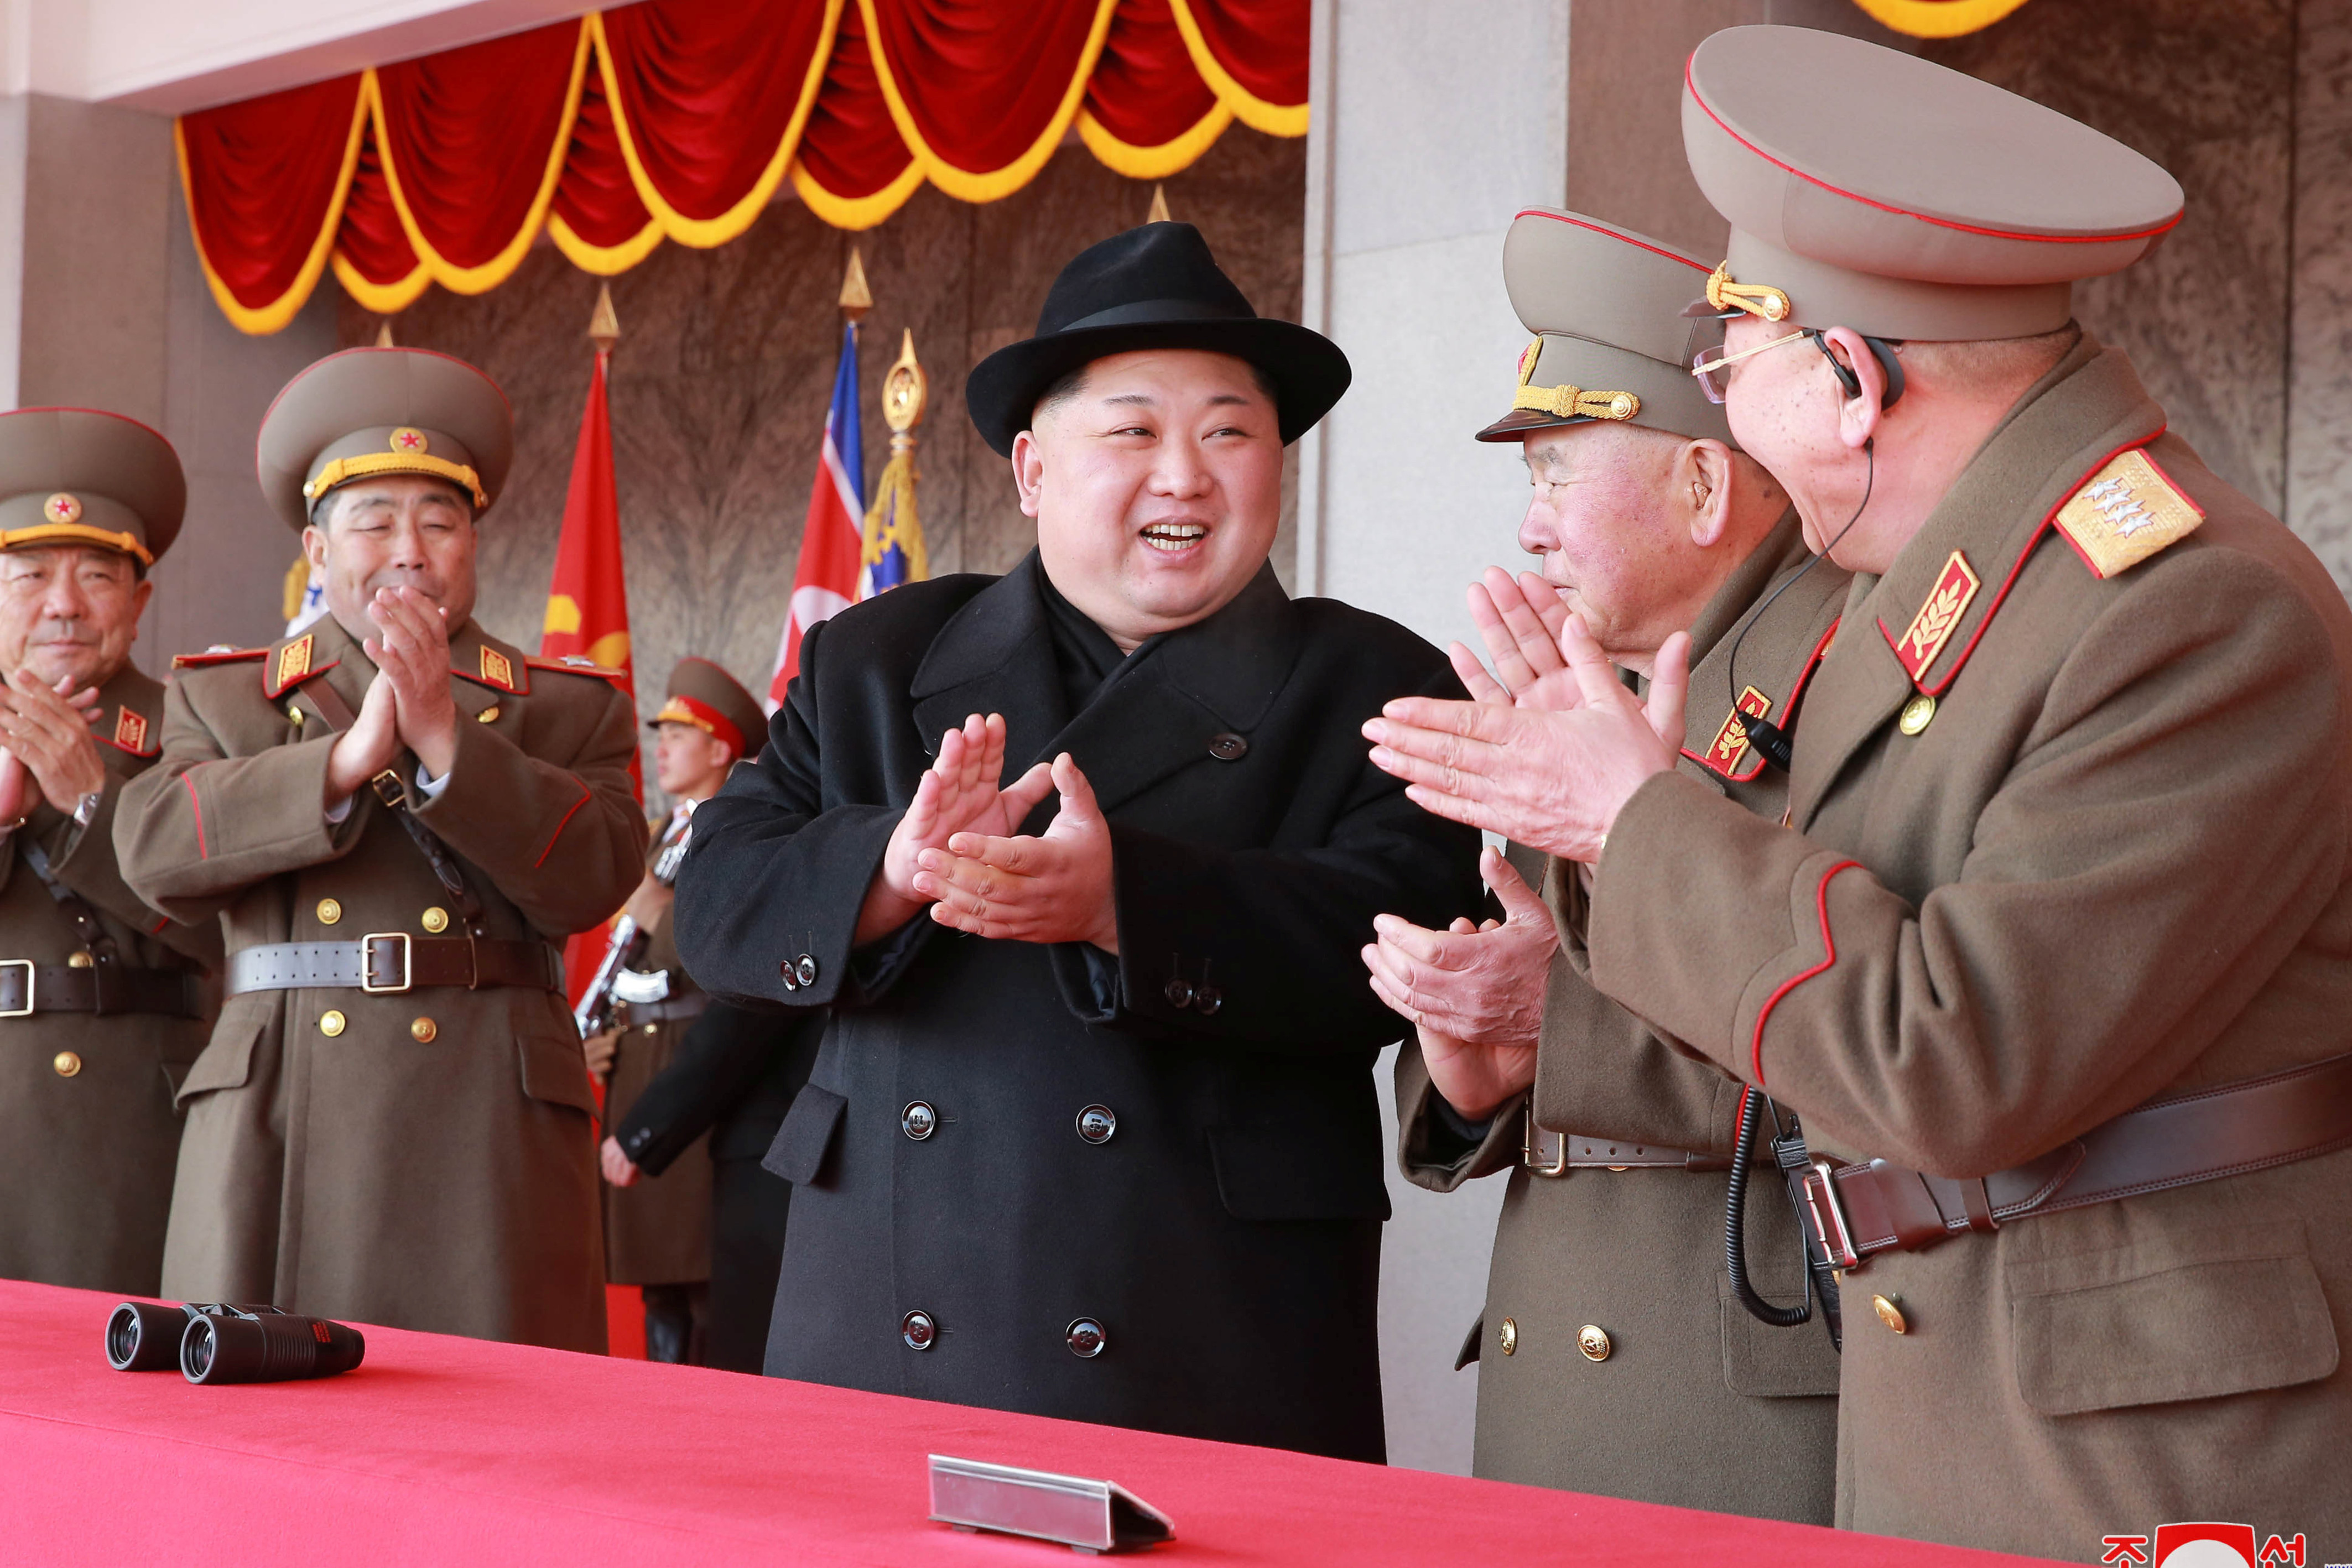 Kim Jong Un attends a grand military parade celebrating the 70th founding anniversary of the Korean People's Army in Pyongyang, in this photo released by North Korea's Korean Central News Agency (KCNA/REUTERS)